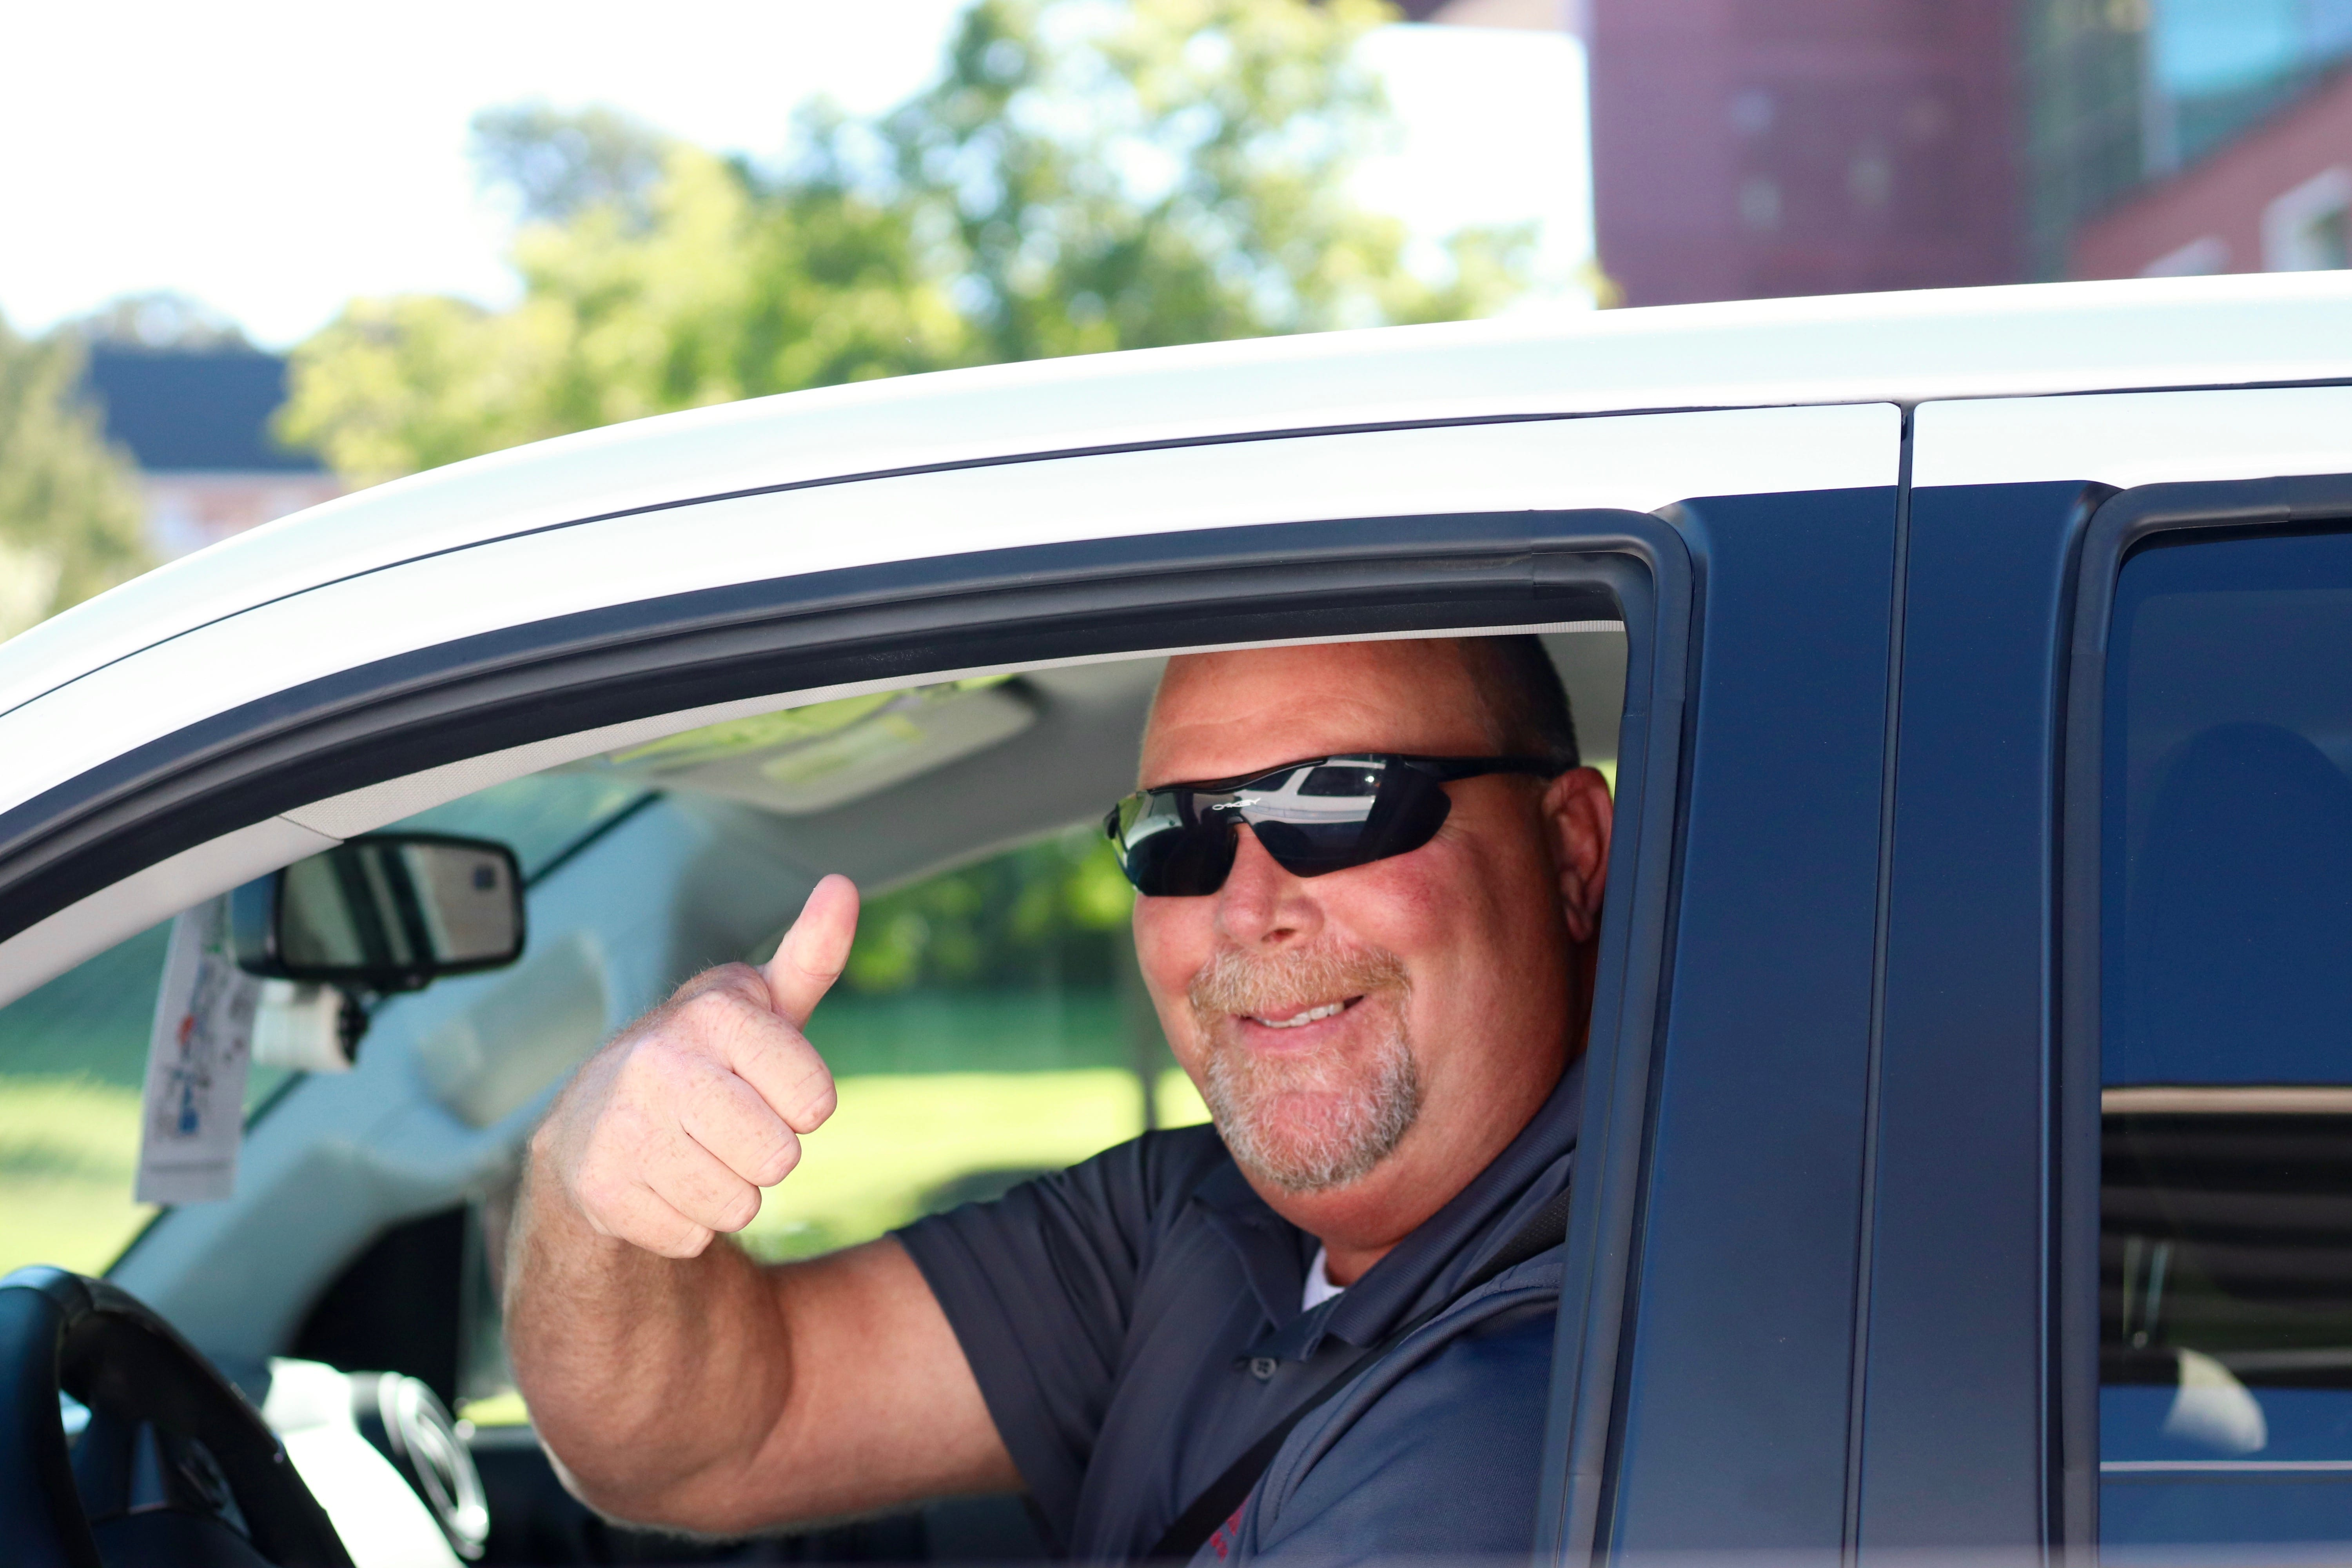 A man with sunglasses smiling and giving a thumbs up from the front seat of his car